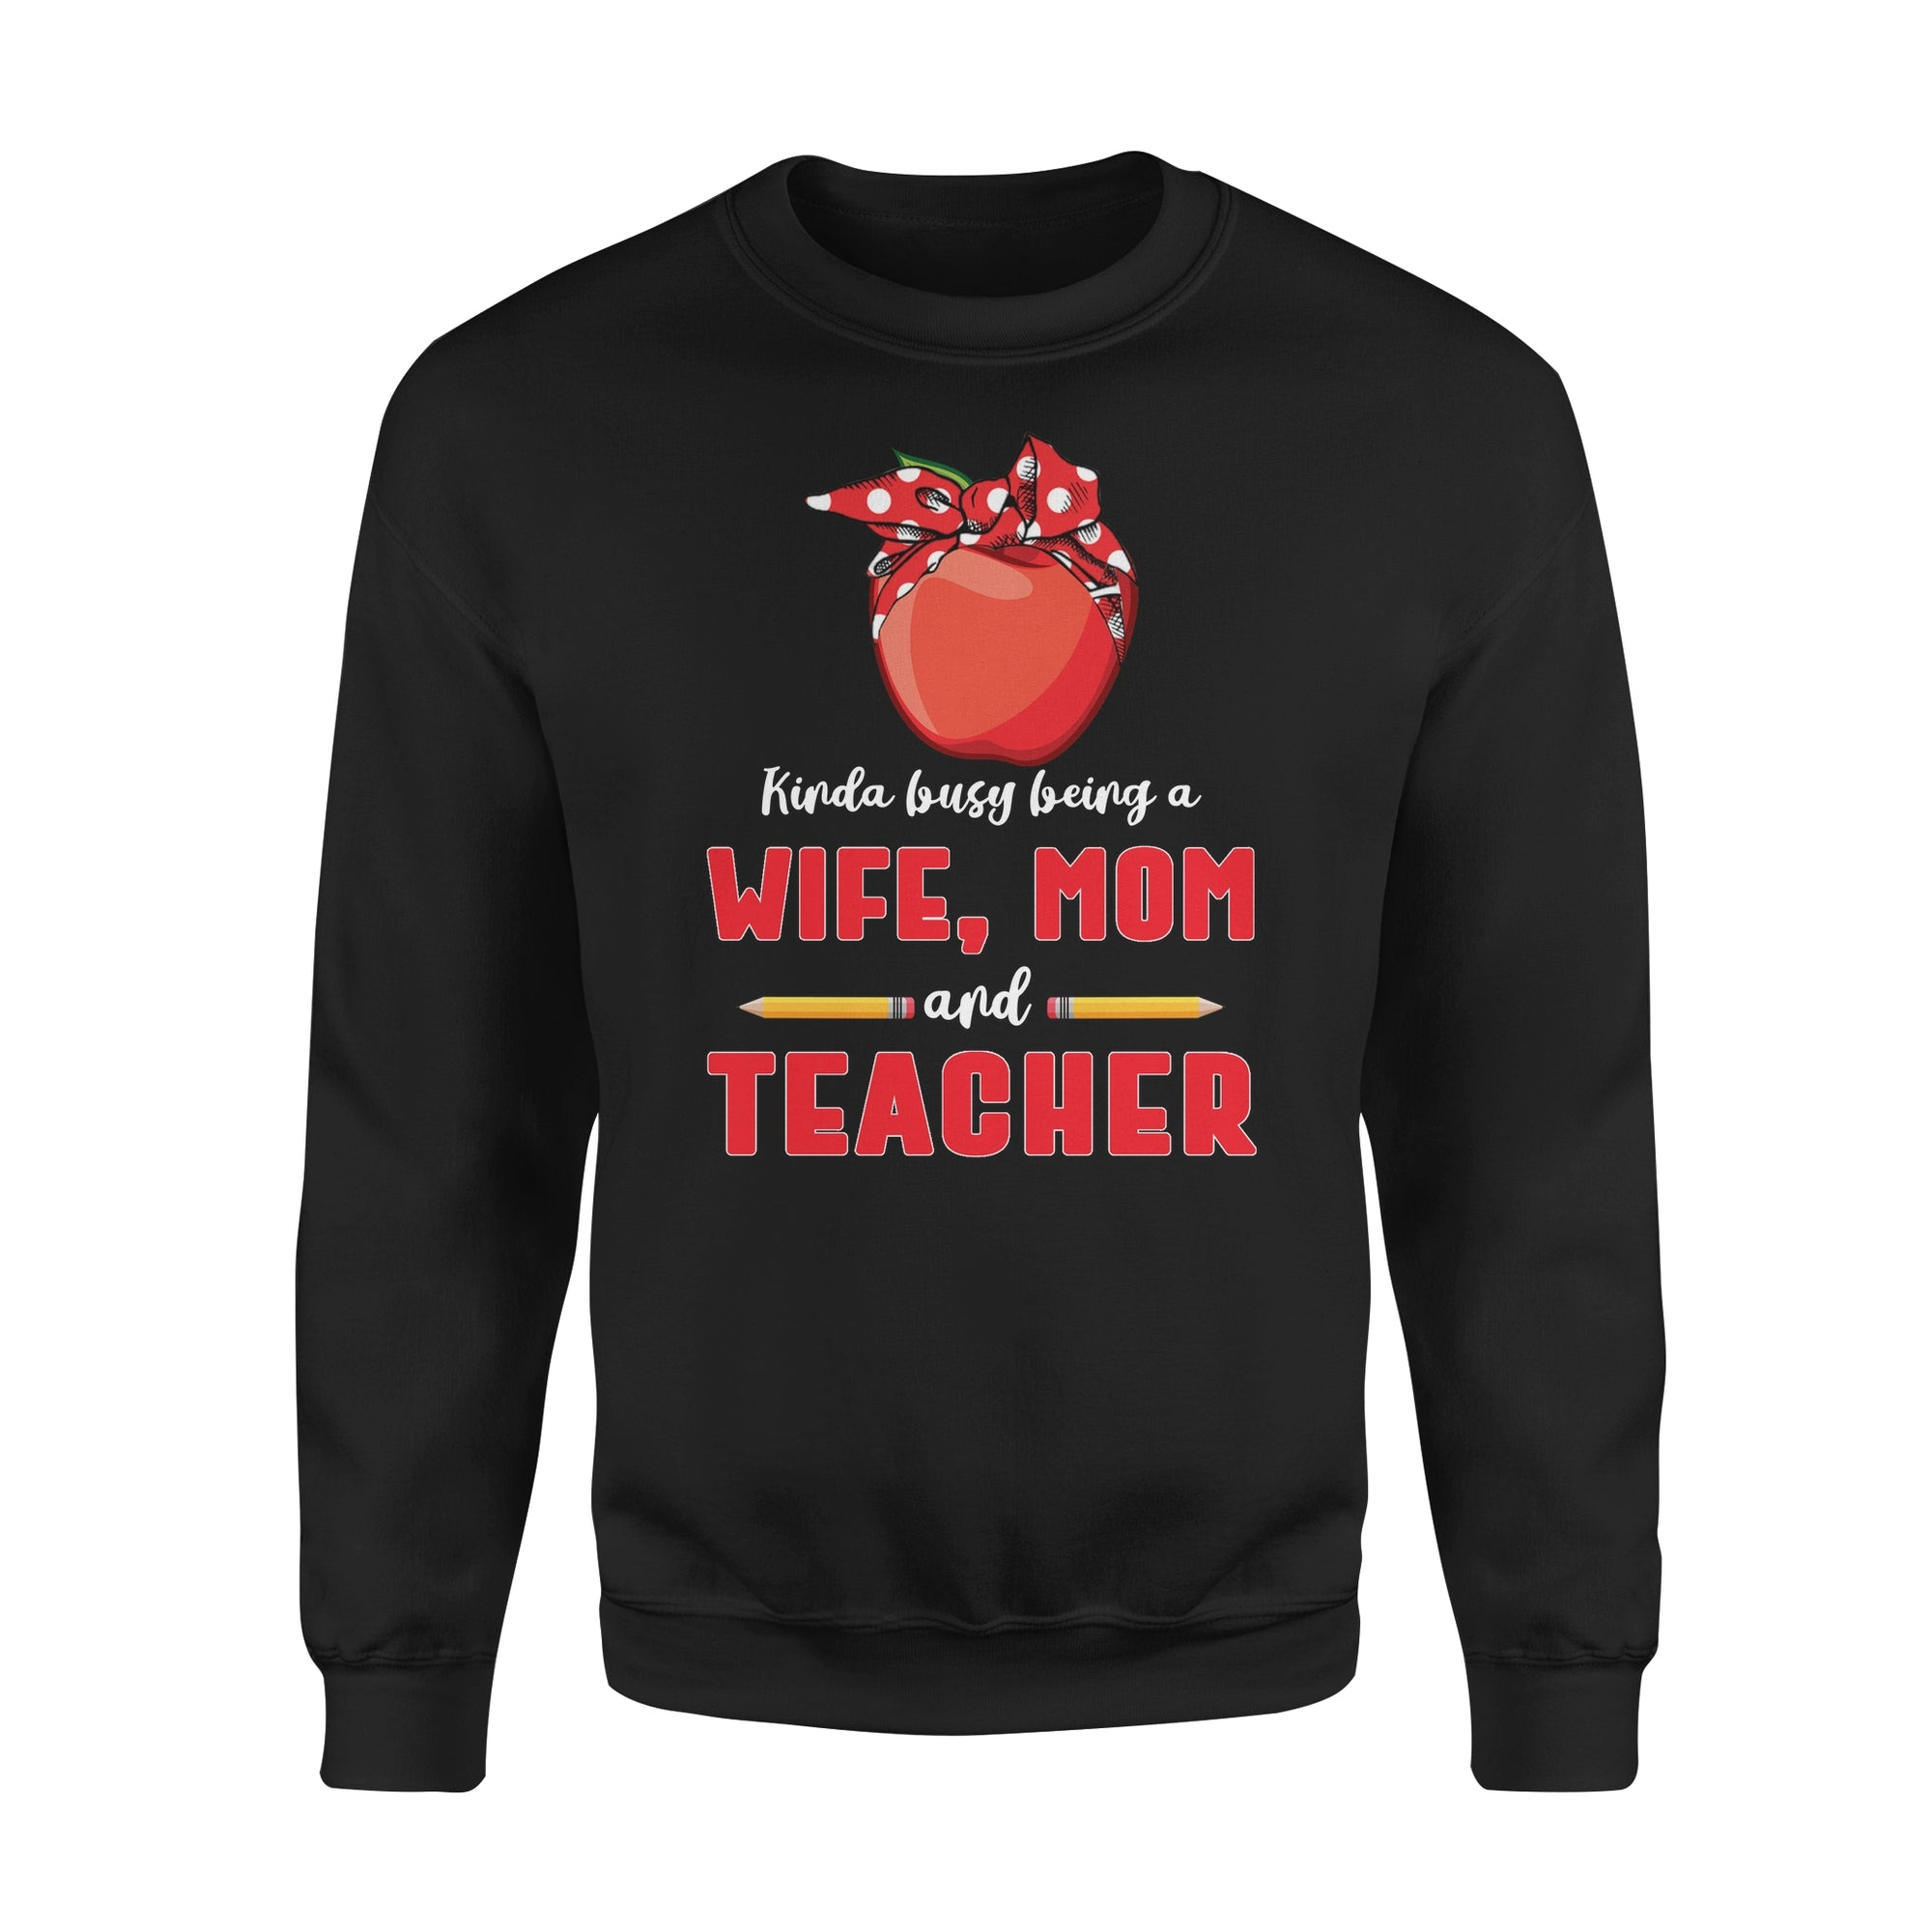 VIRA Premium Fleece Sweatshirt for awesome teachers & moms